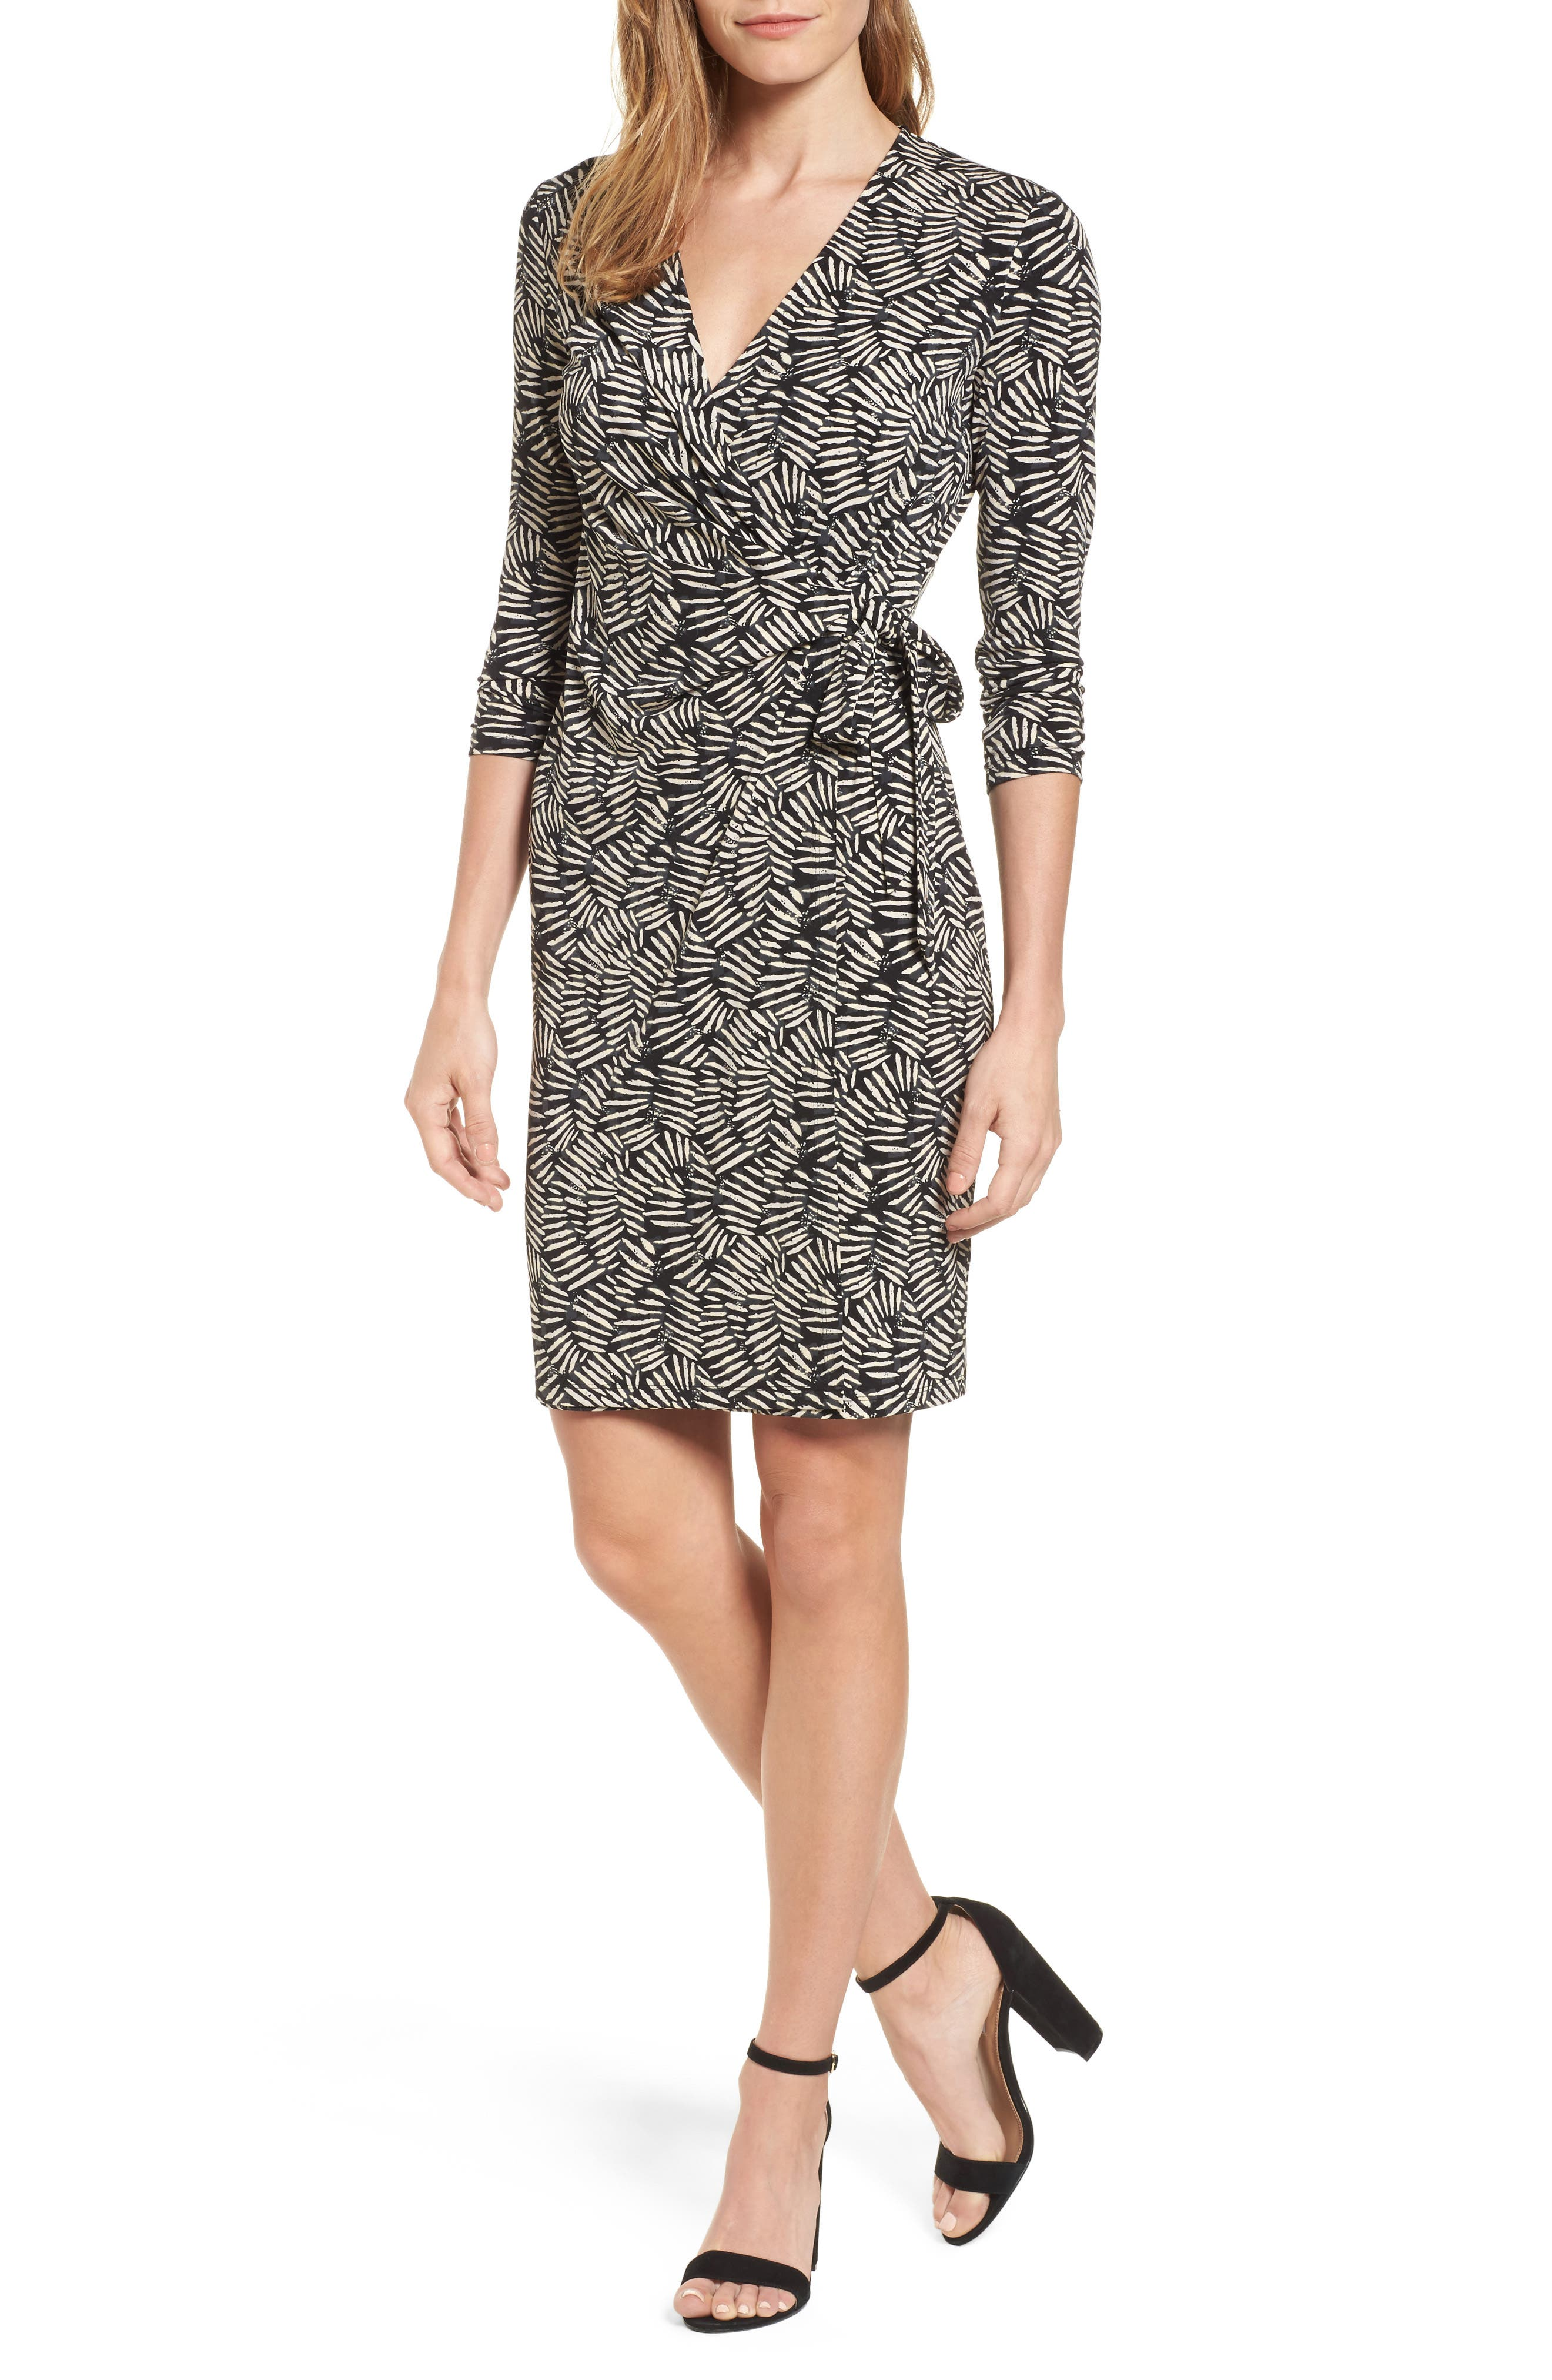 Alternate Image 1 Selected - Anne Klein Print Wrap Dress